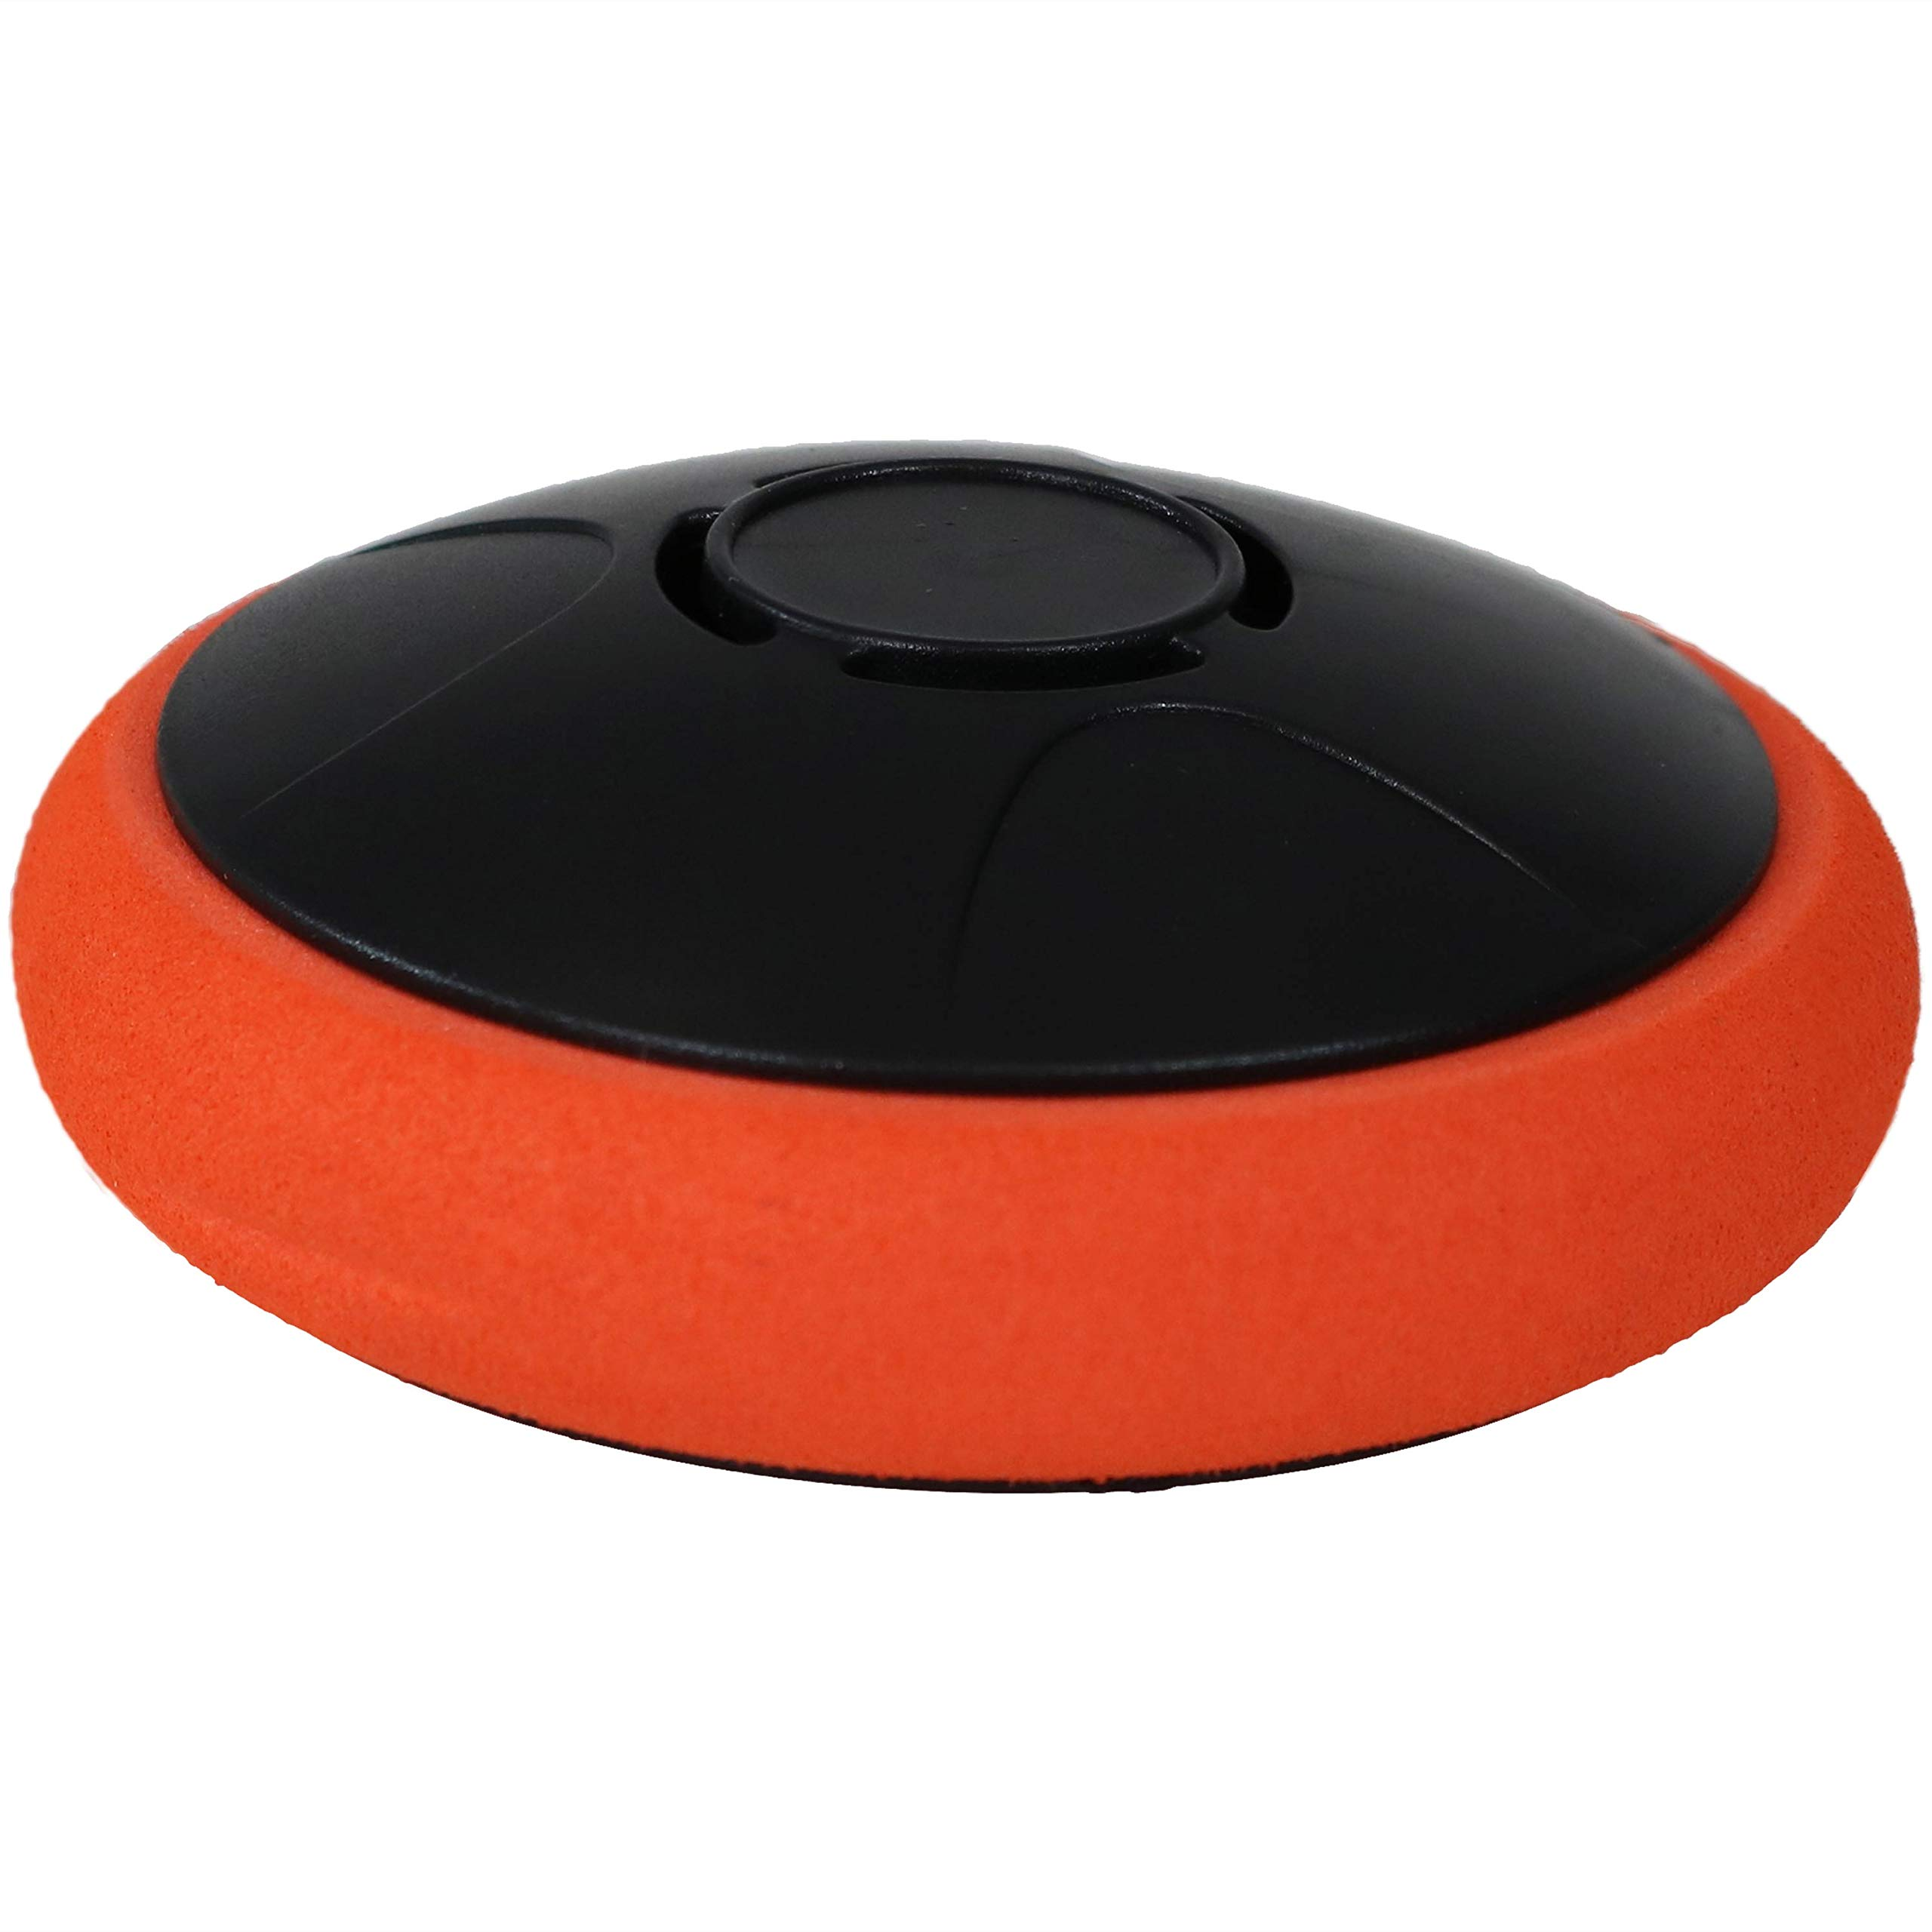 Sunnydaze Tabletop Rechargeable Hockey Hover Puck, 2-Inch by Sunnydaze Decor